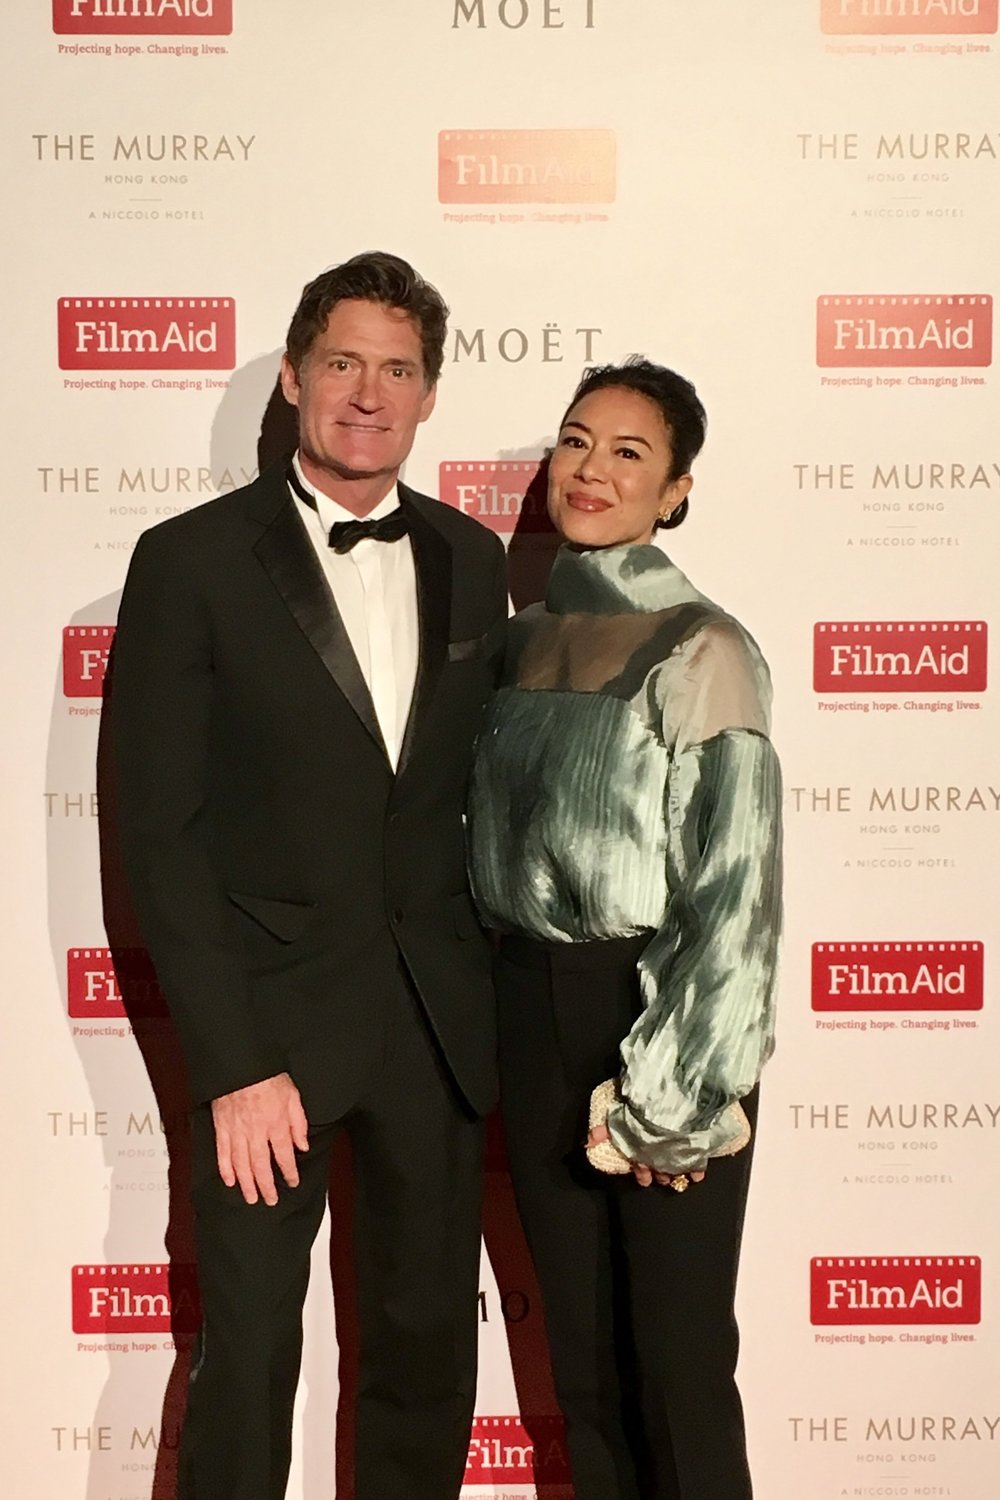 Cristina Mclauchlan, Founder of The Vibe Tribe was spotted with Craig Leeson, Director of A Plastic Ocean, supporting Redress Design Award alumni at the recent FILM AID ASIA red carpet event. Here Cristina's wearing 2017 finalist Amanda Borgfors Mészàros Amanda Borgfors Mészàros's zero-waste, up-cycled pleated teal blouse.